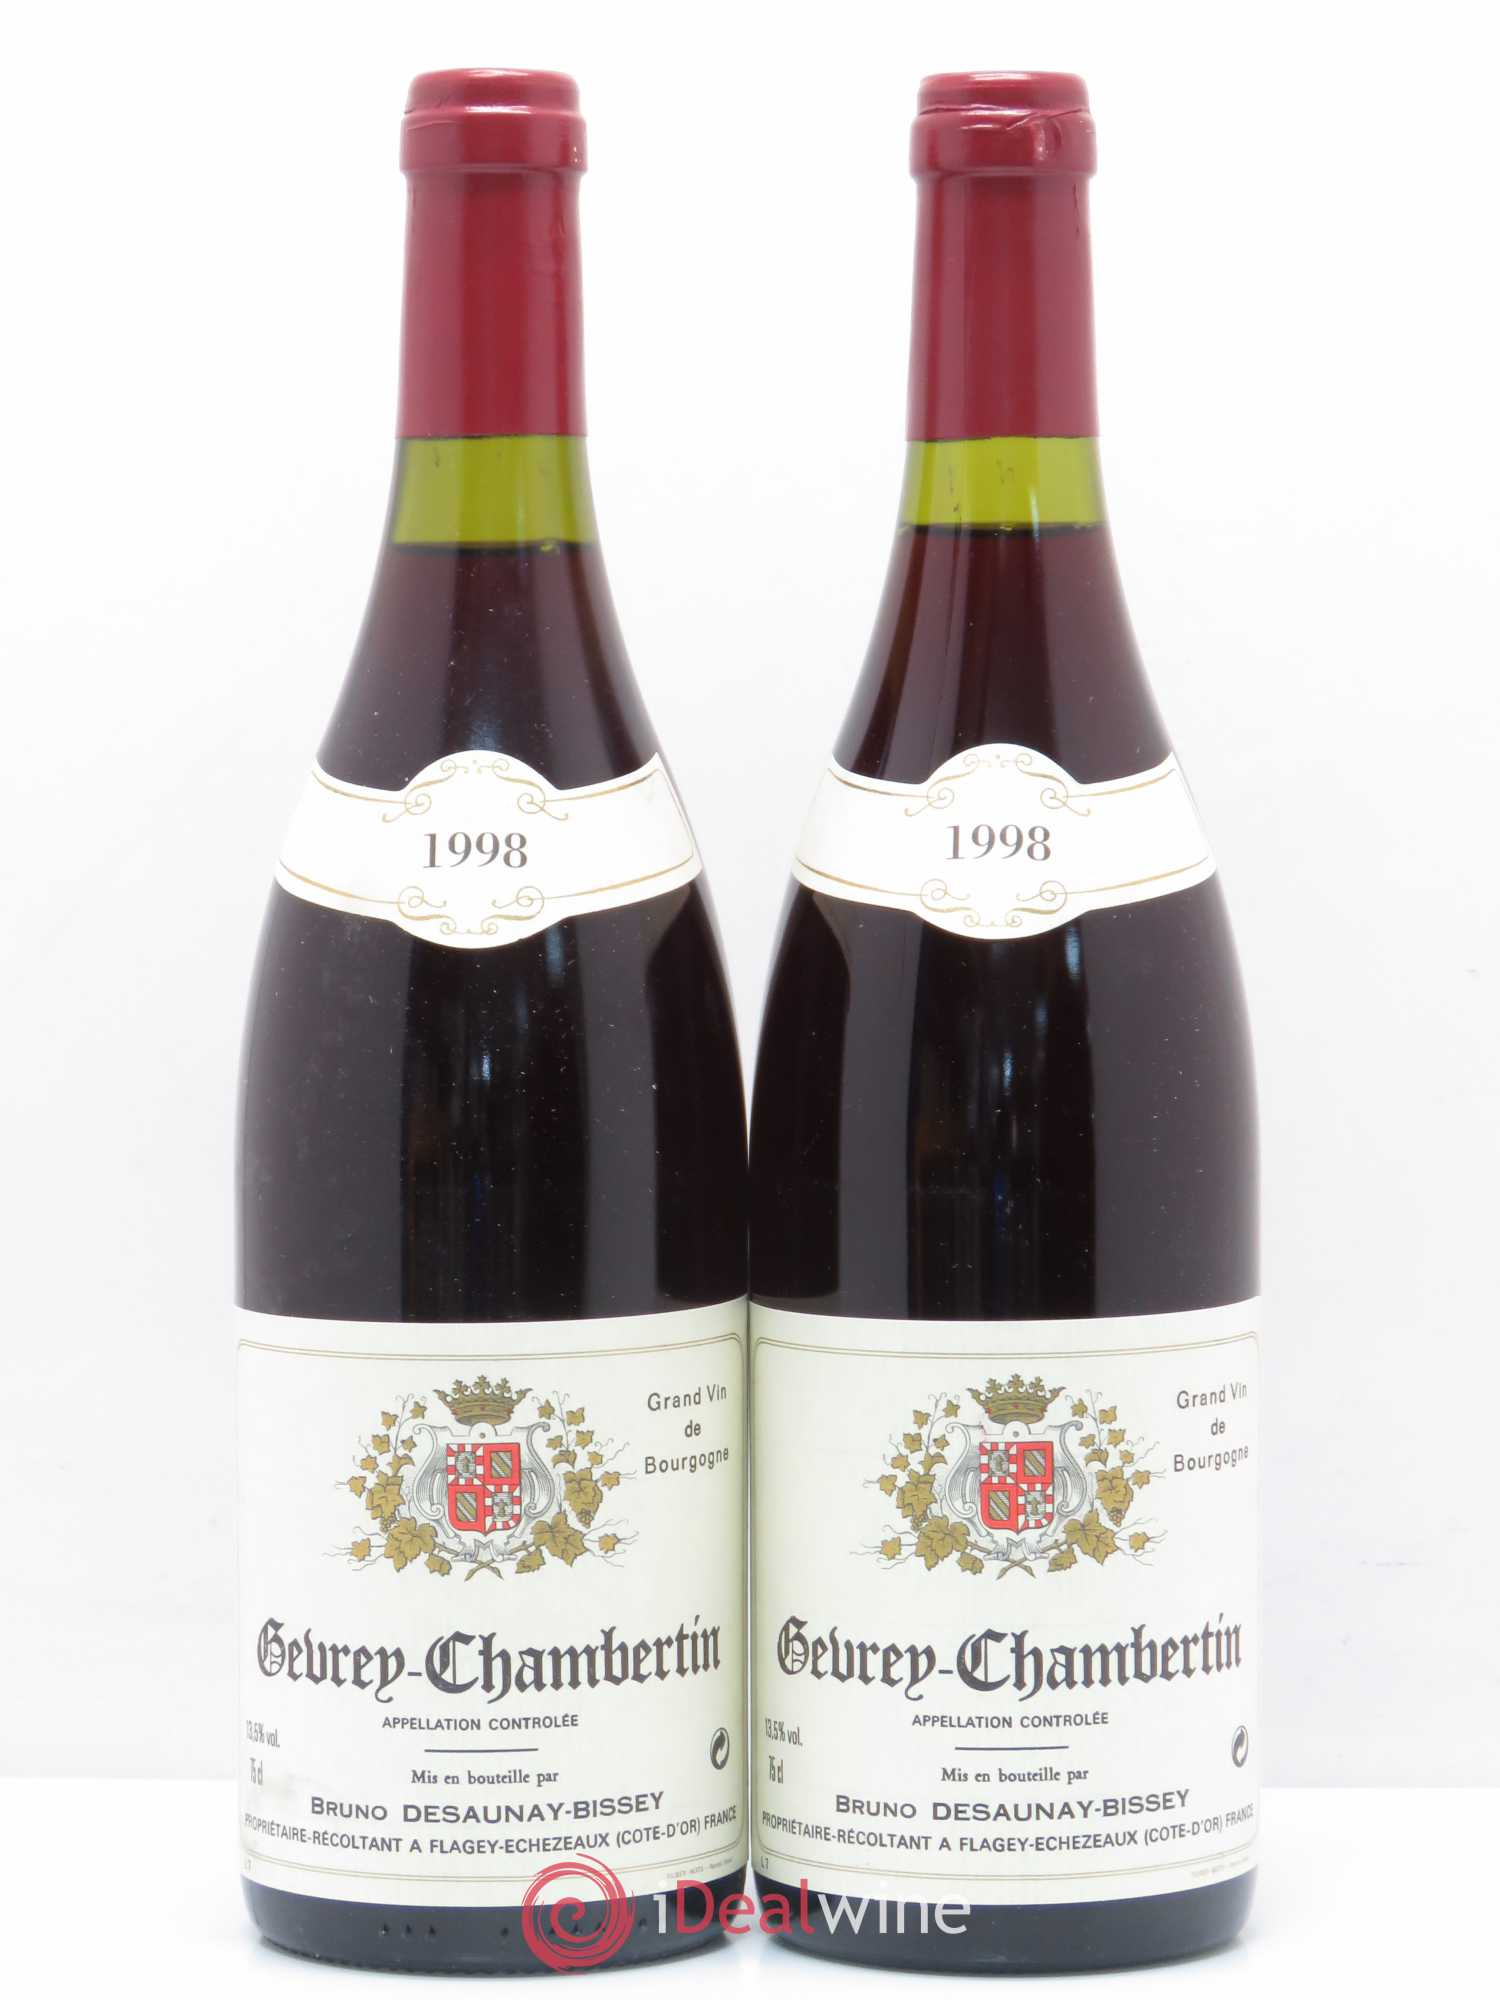 Gevrey-Chambertin Domaine Bruno Desaunay-Bissey 1998 - Lot of 2 Bottles